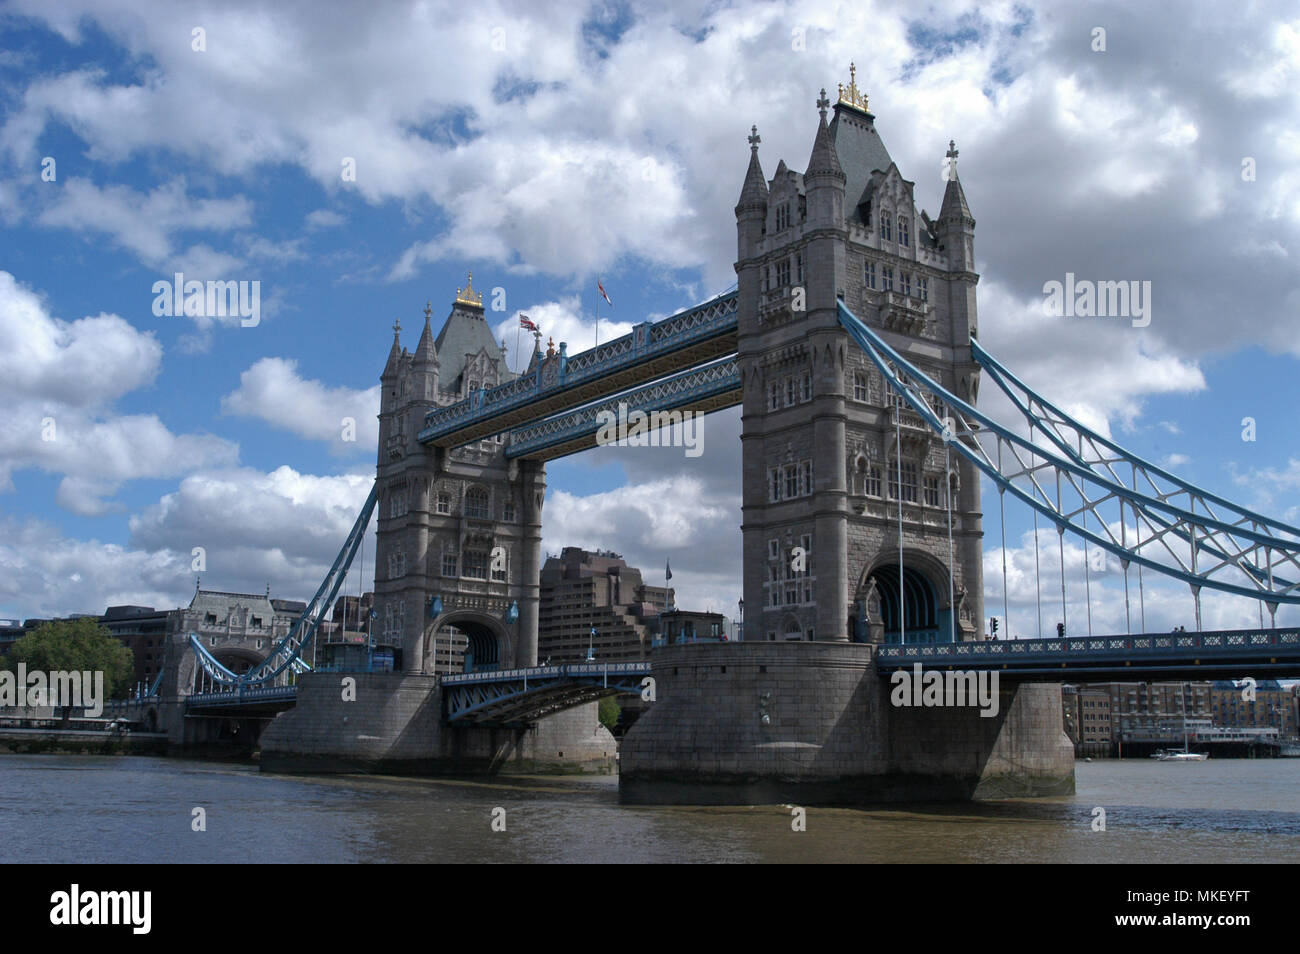 built over 120 years ago, Tower Bridge the most famous bridge in the world - Stock Image